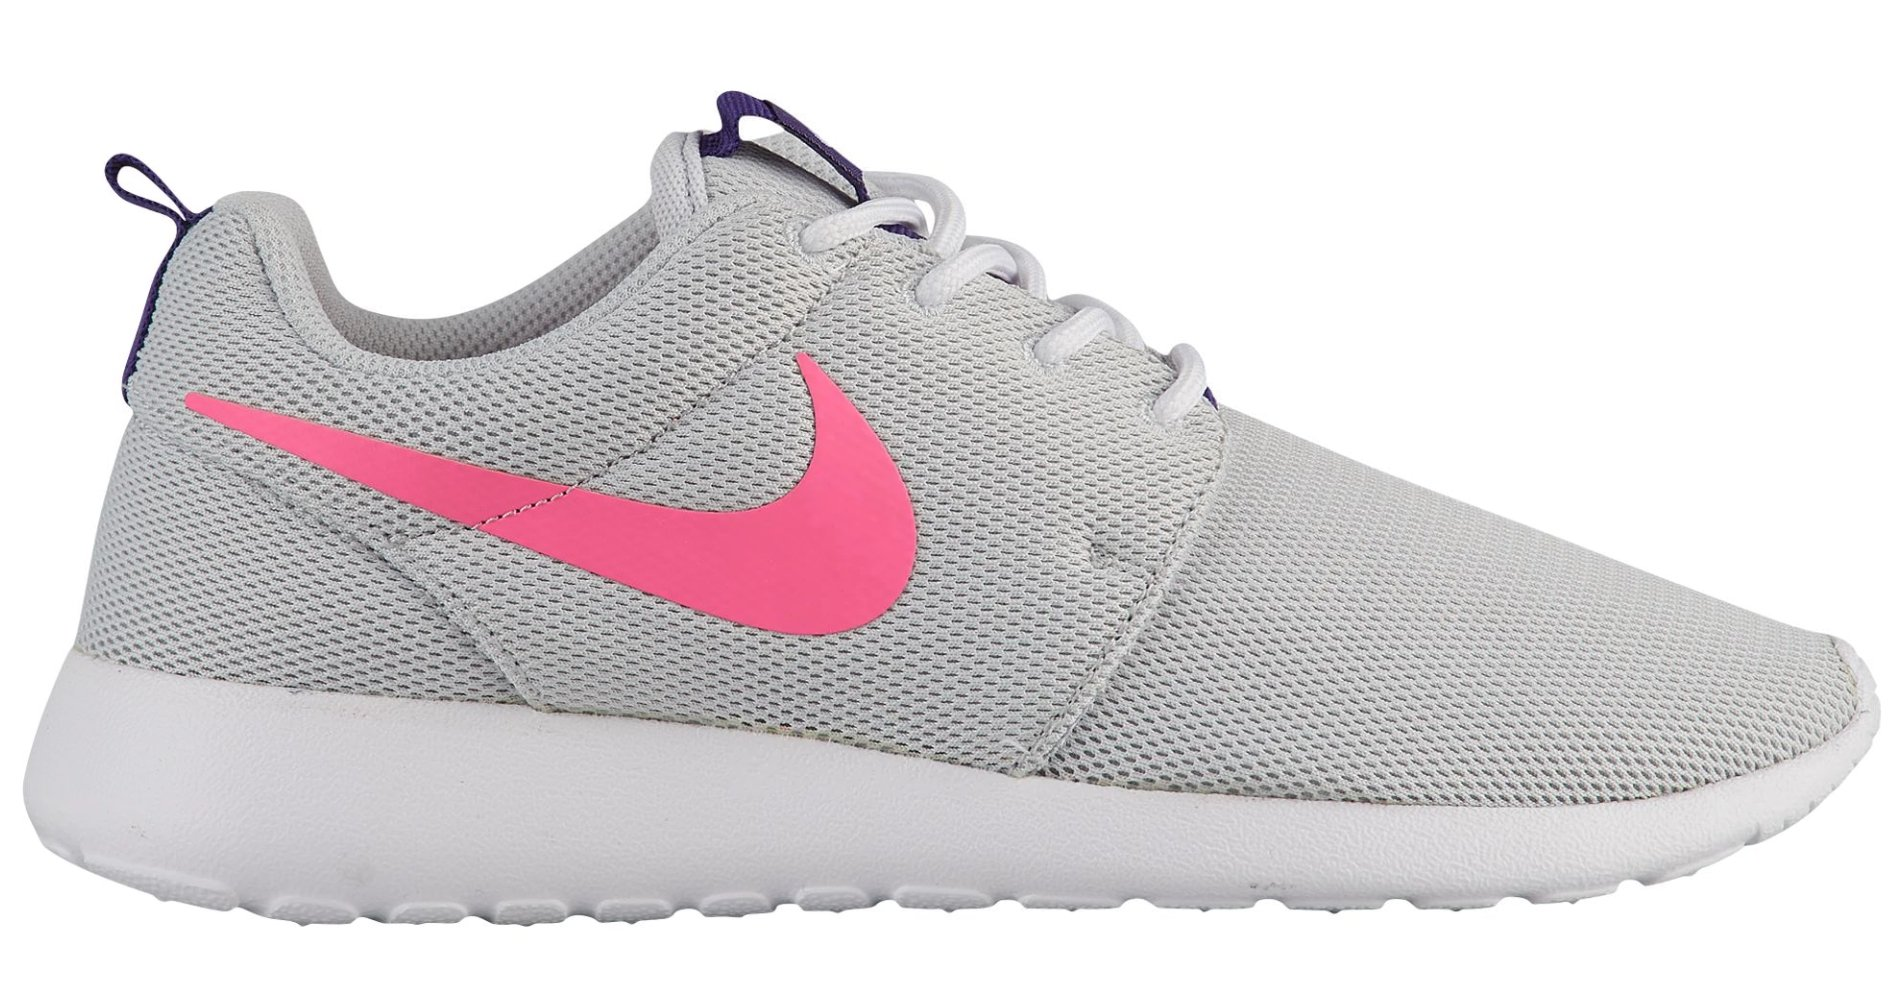 NIKE Roshe One Women's Shoes Pure PlatinumLaser Pink 844994 007 (11.5 B(M) US)